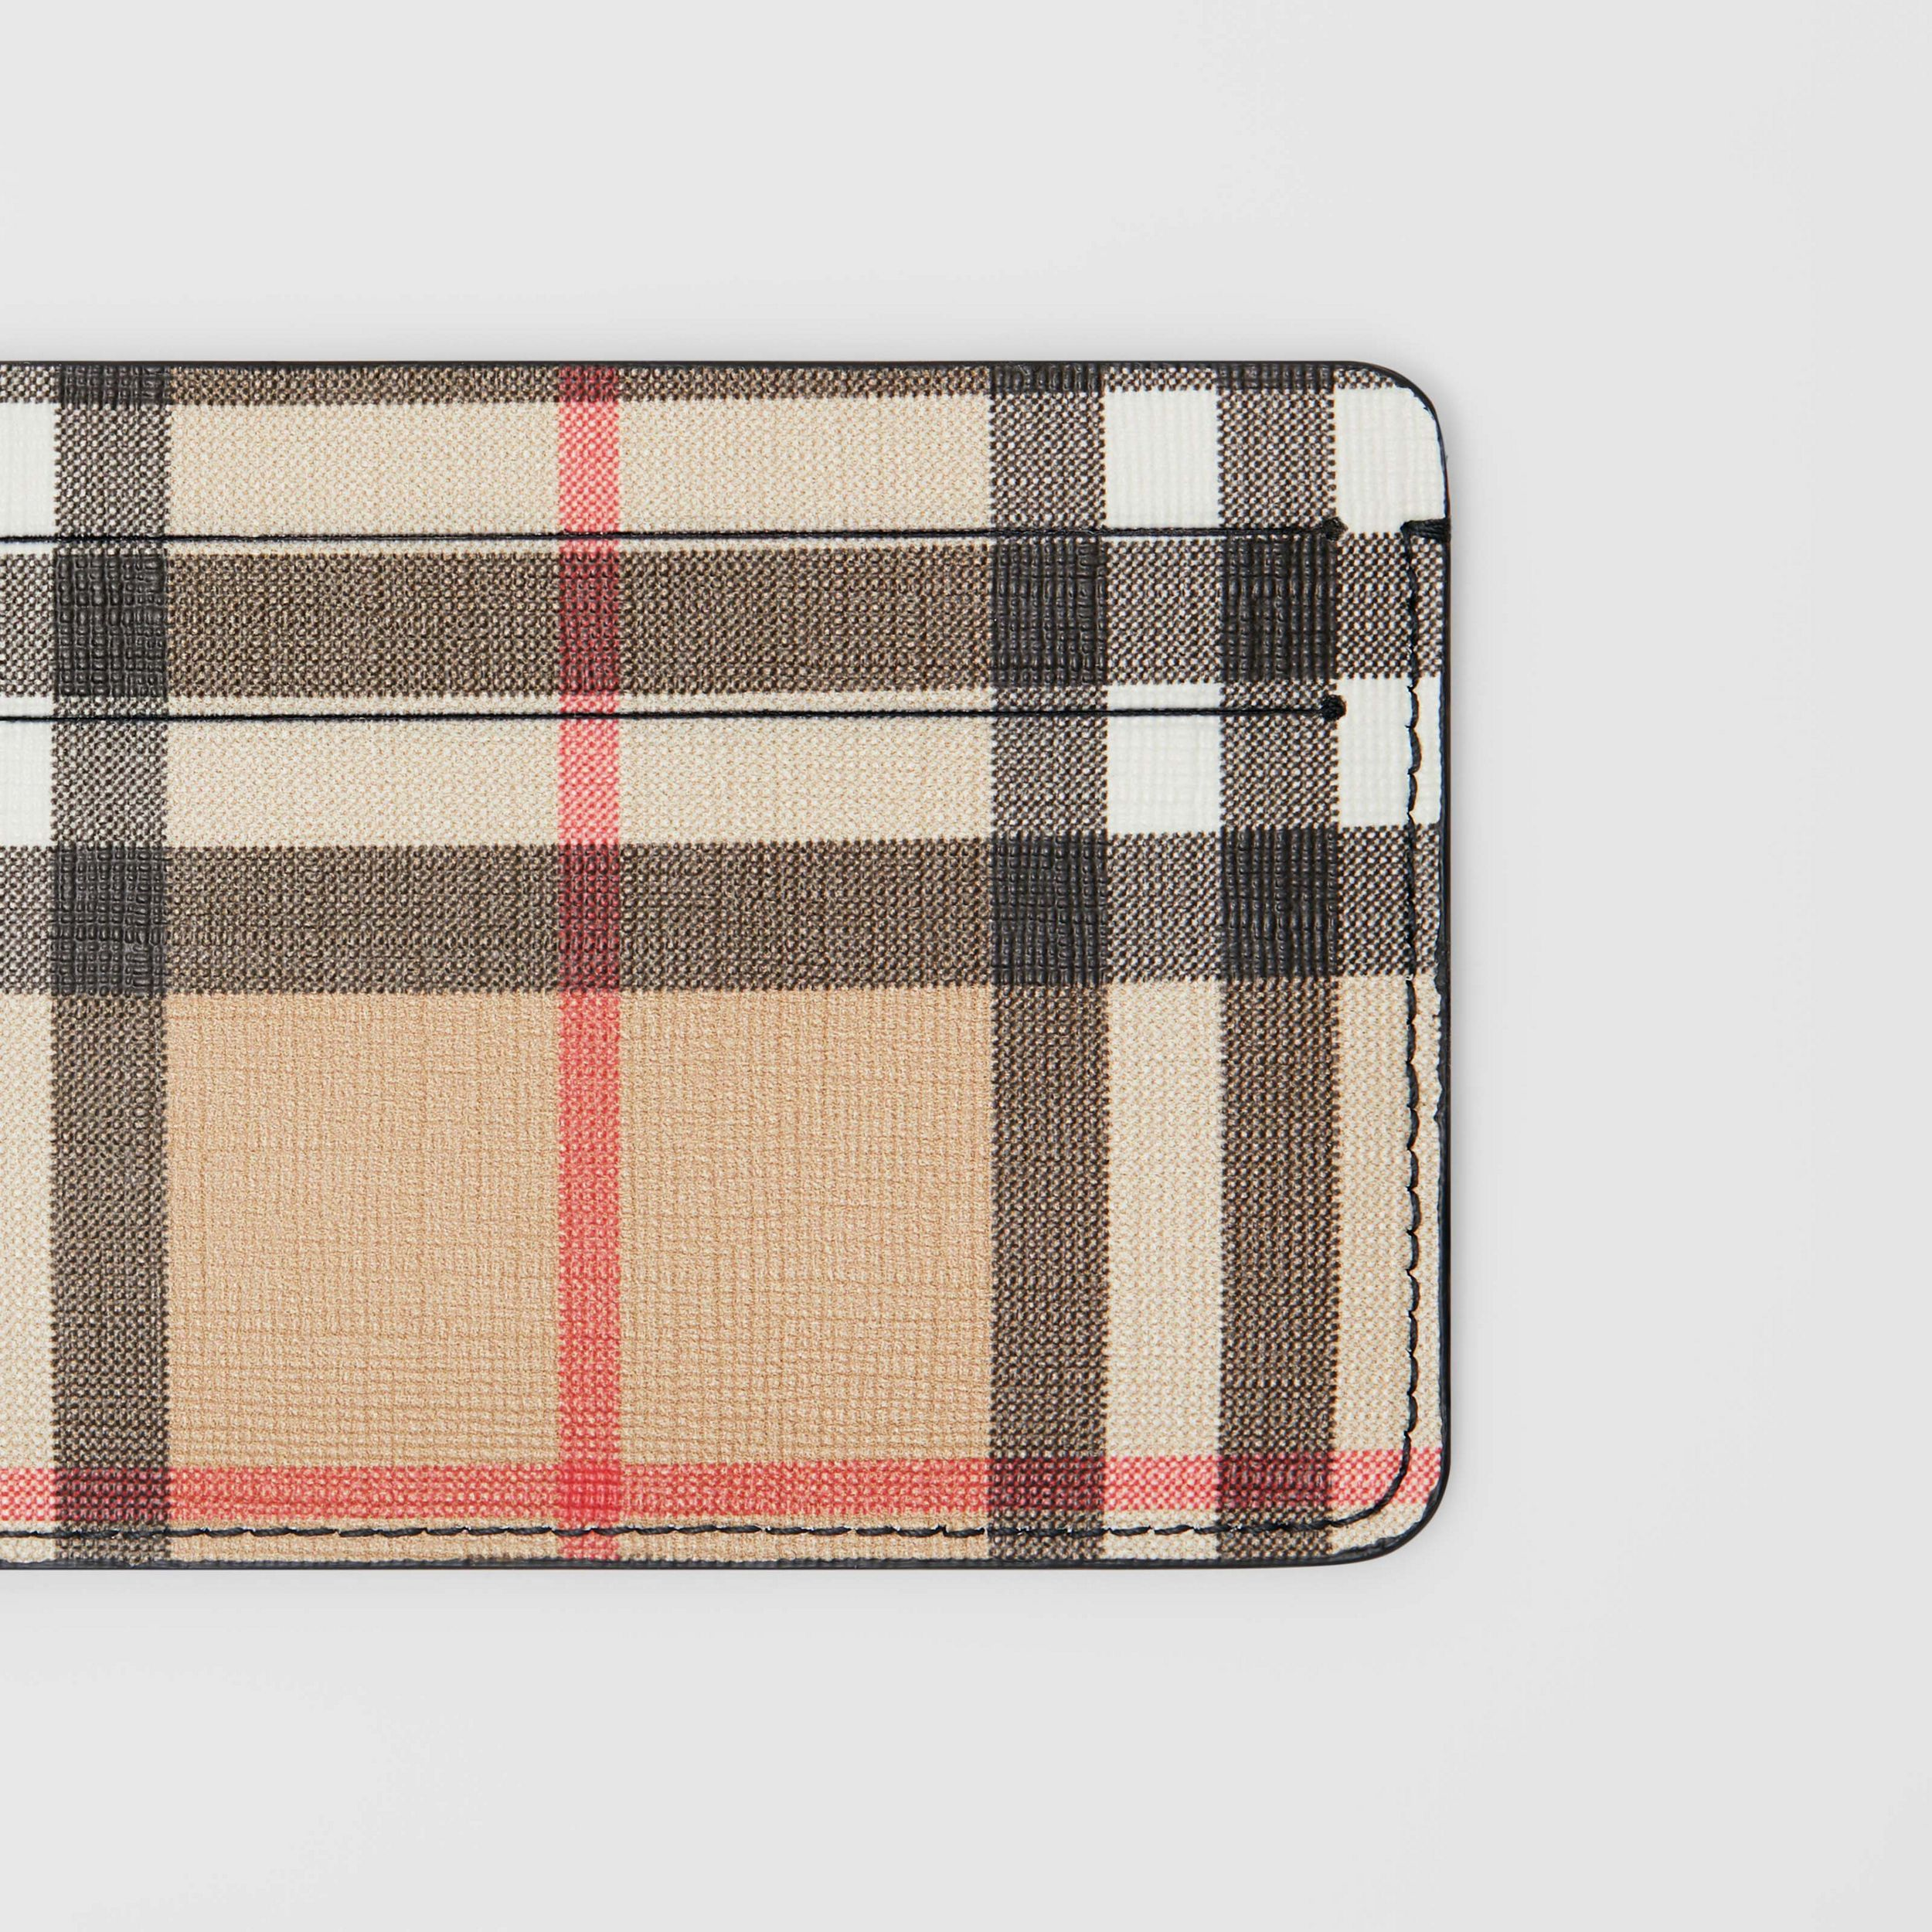 Vintage Check E-canvas Card Case in Black - Women | Burberry - 2